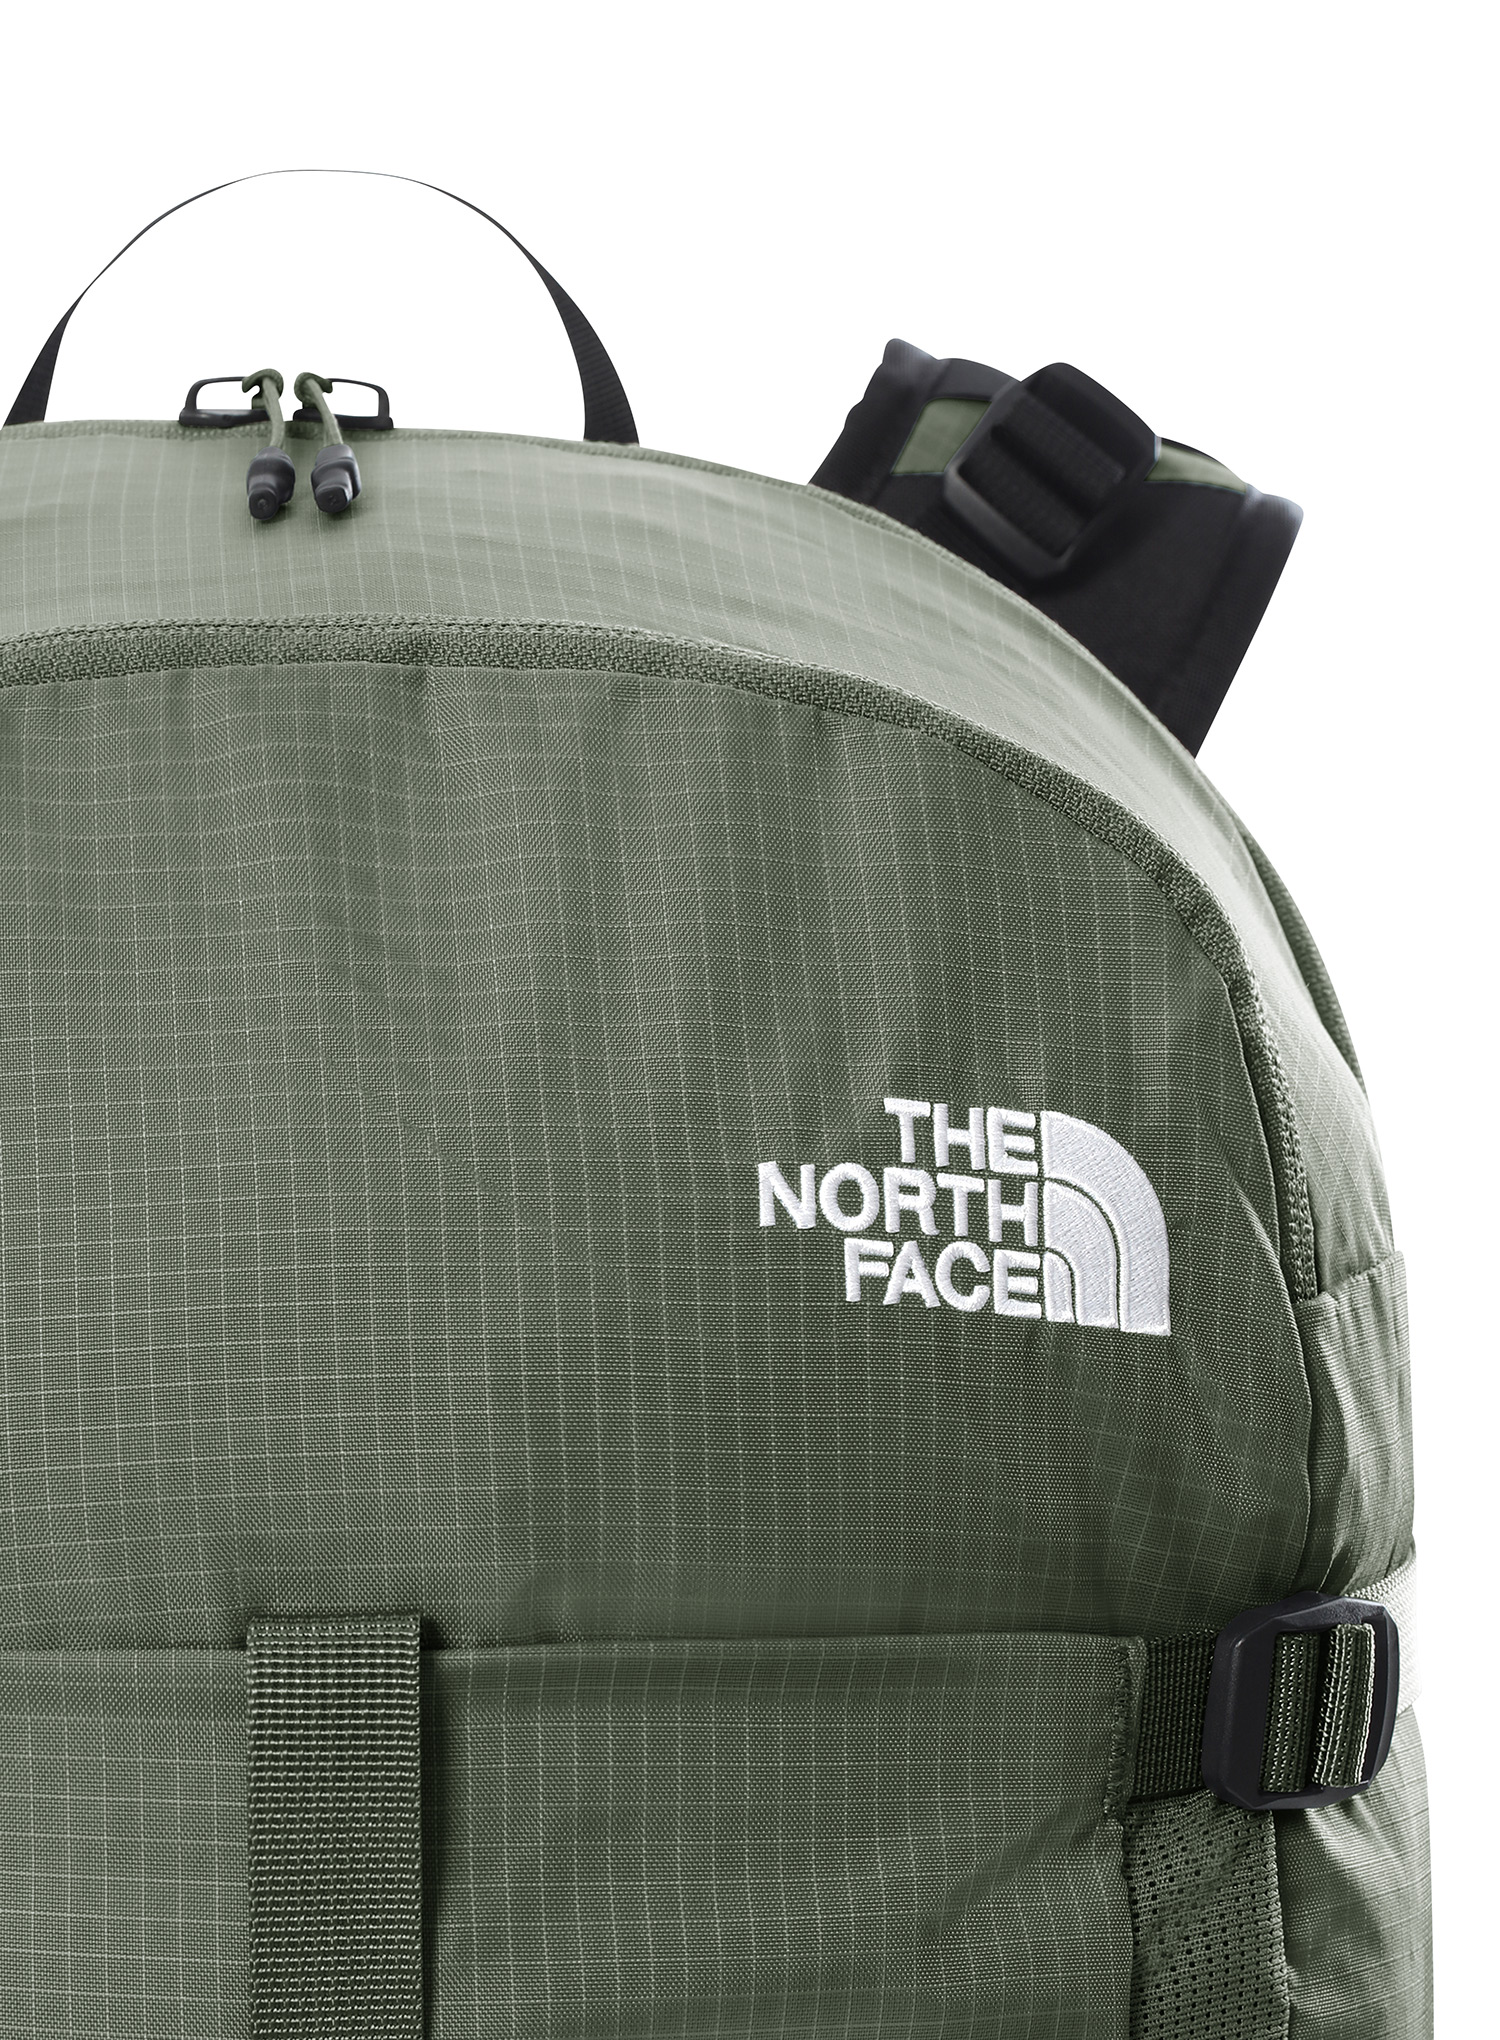 Plecak turystyczny The North Face Alamere 36 - green/spring green - zdjęcie nr. 3